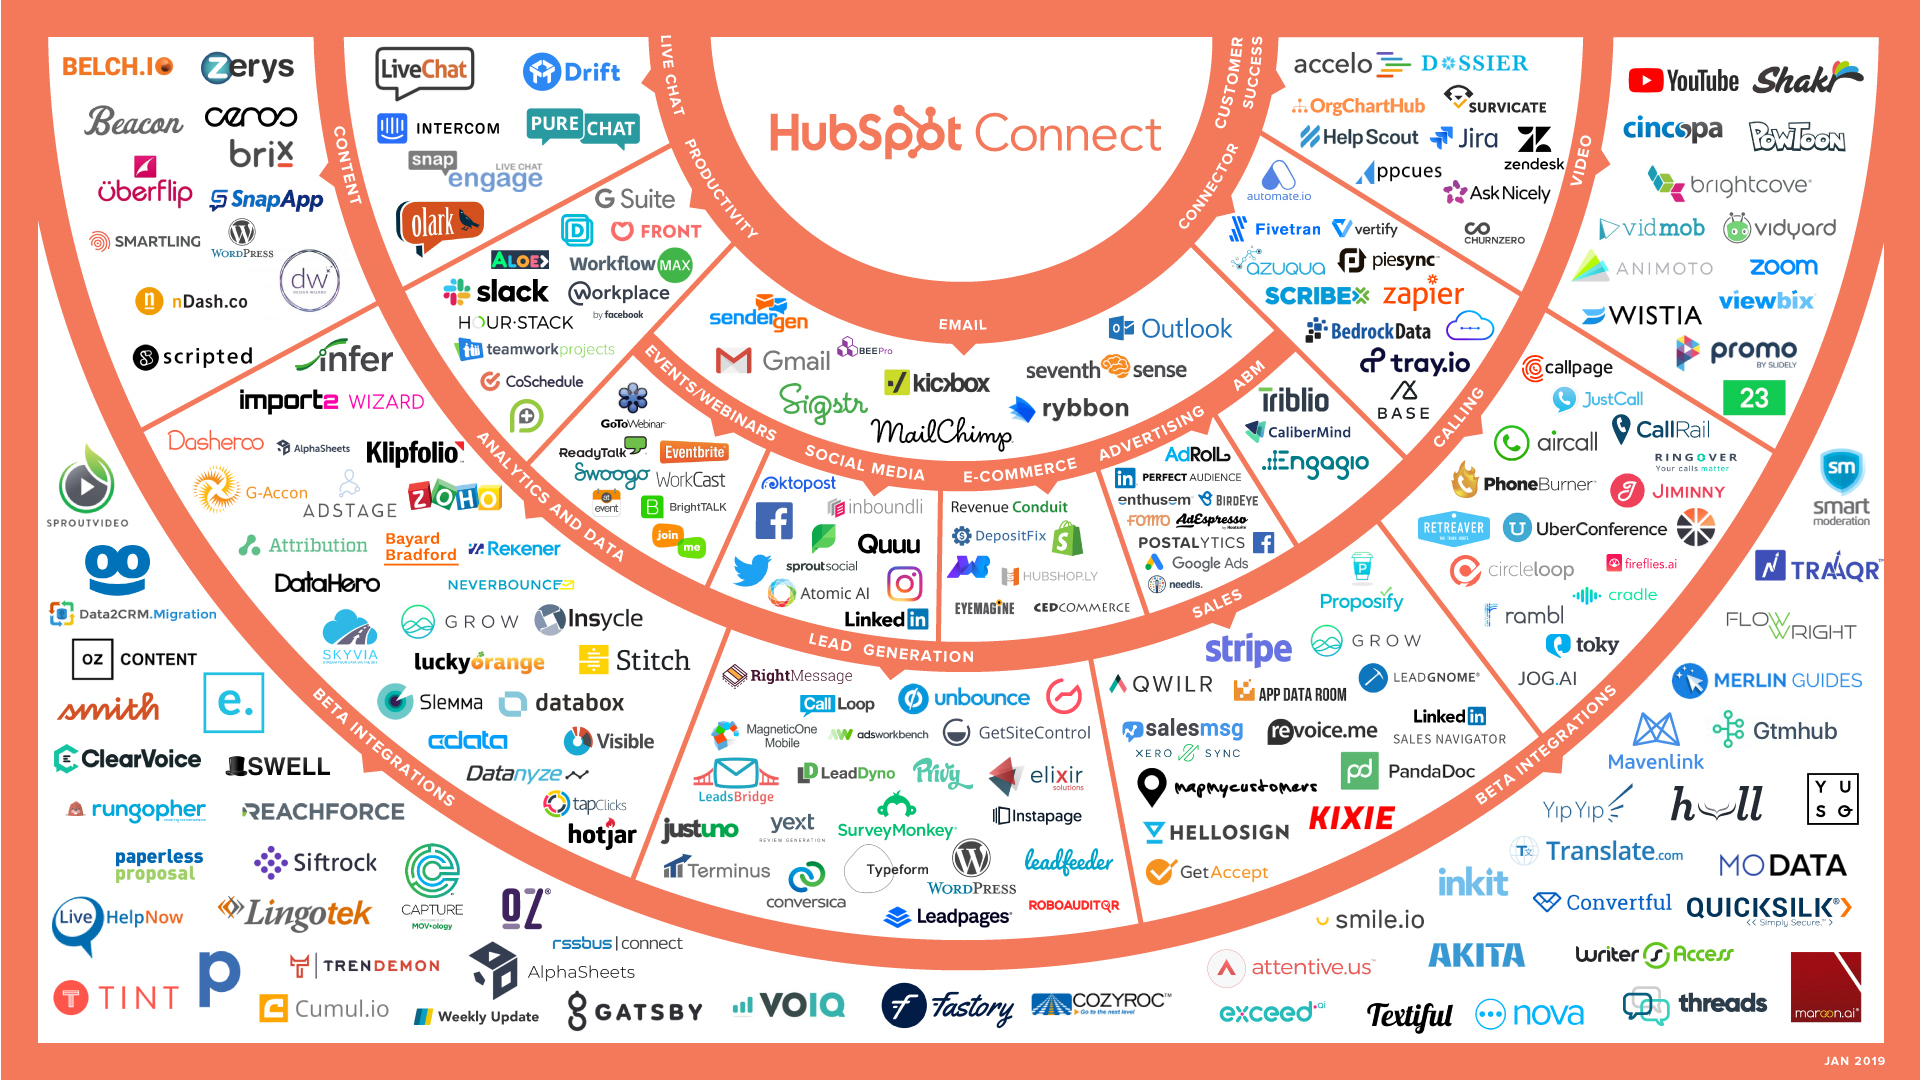 March 2019: New HubSpot Product Integrations This Month